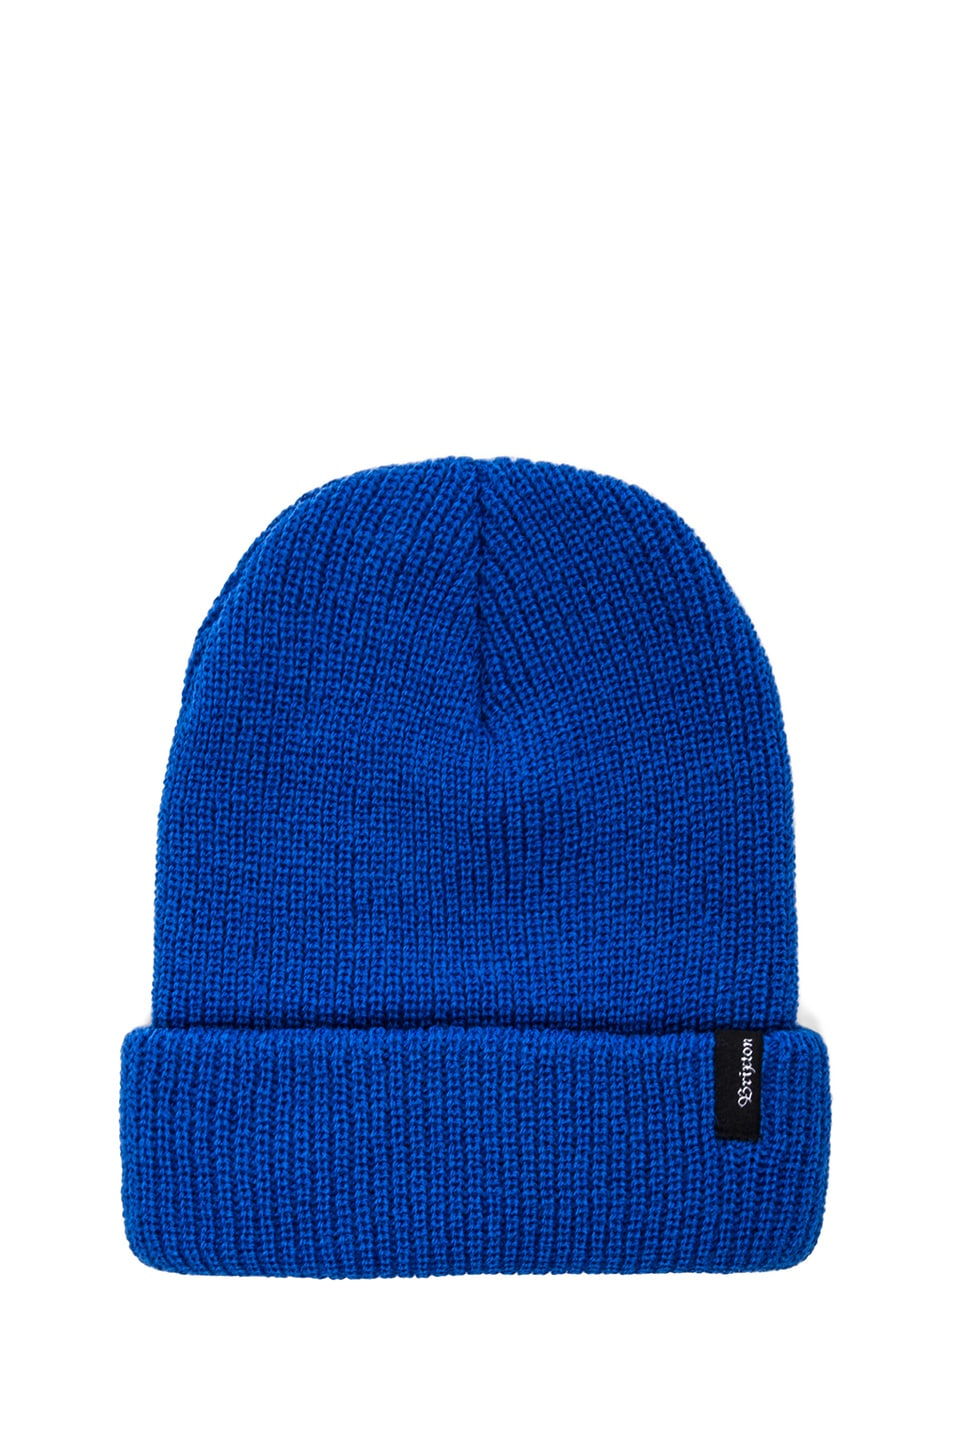 Brixton 2 Pack Heist Beanie in Electric Blue & Shale Brown